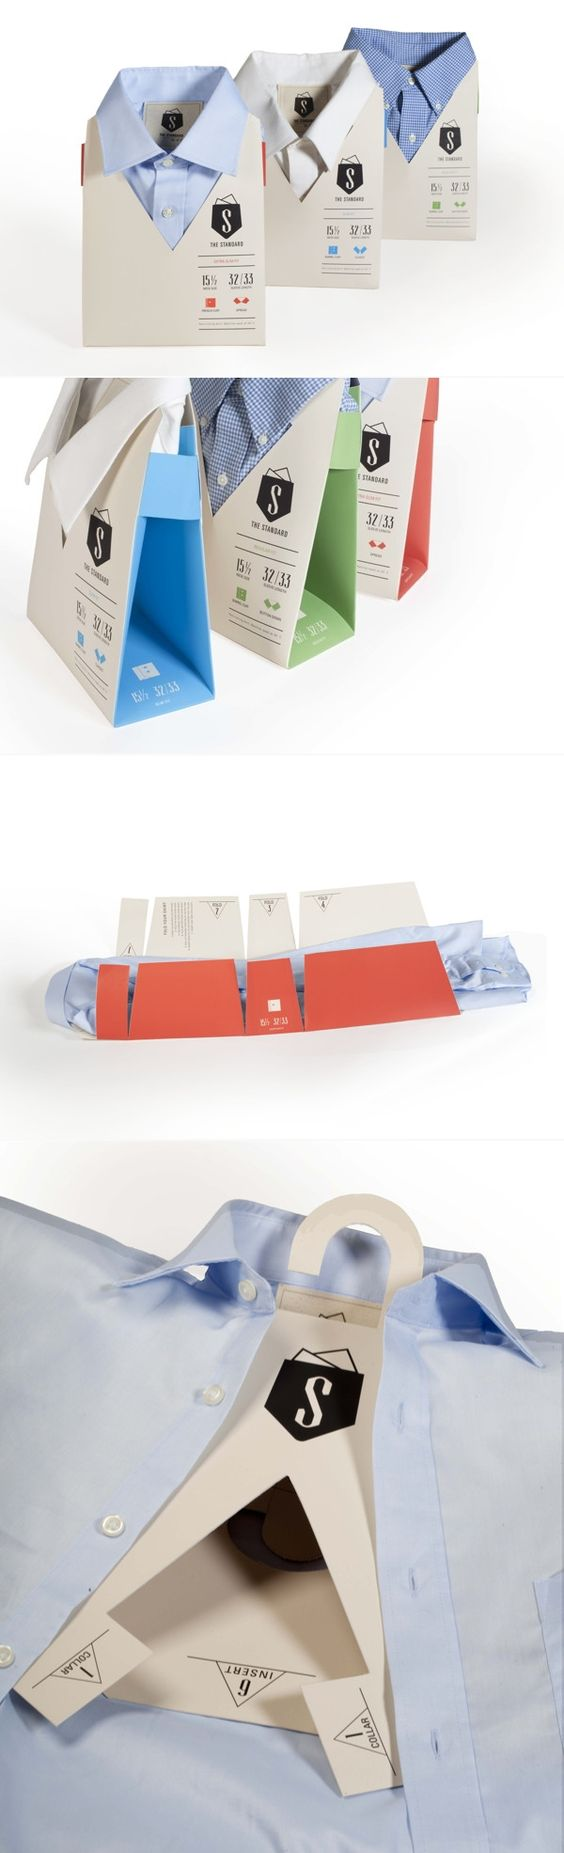 Standard Dress Shirt - eliminating excess packaging / by Jille Natalino, Elizabeth Kelley, Rob Hurst, Joanna Milewski, via Behance. Very cool #packaging #design PD: